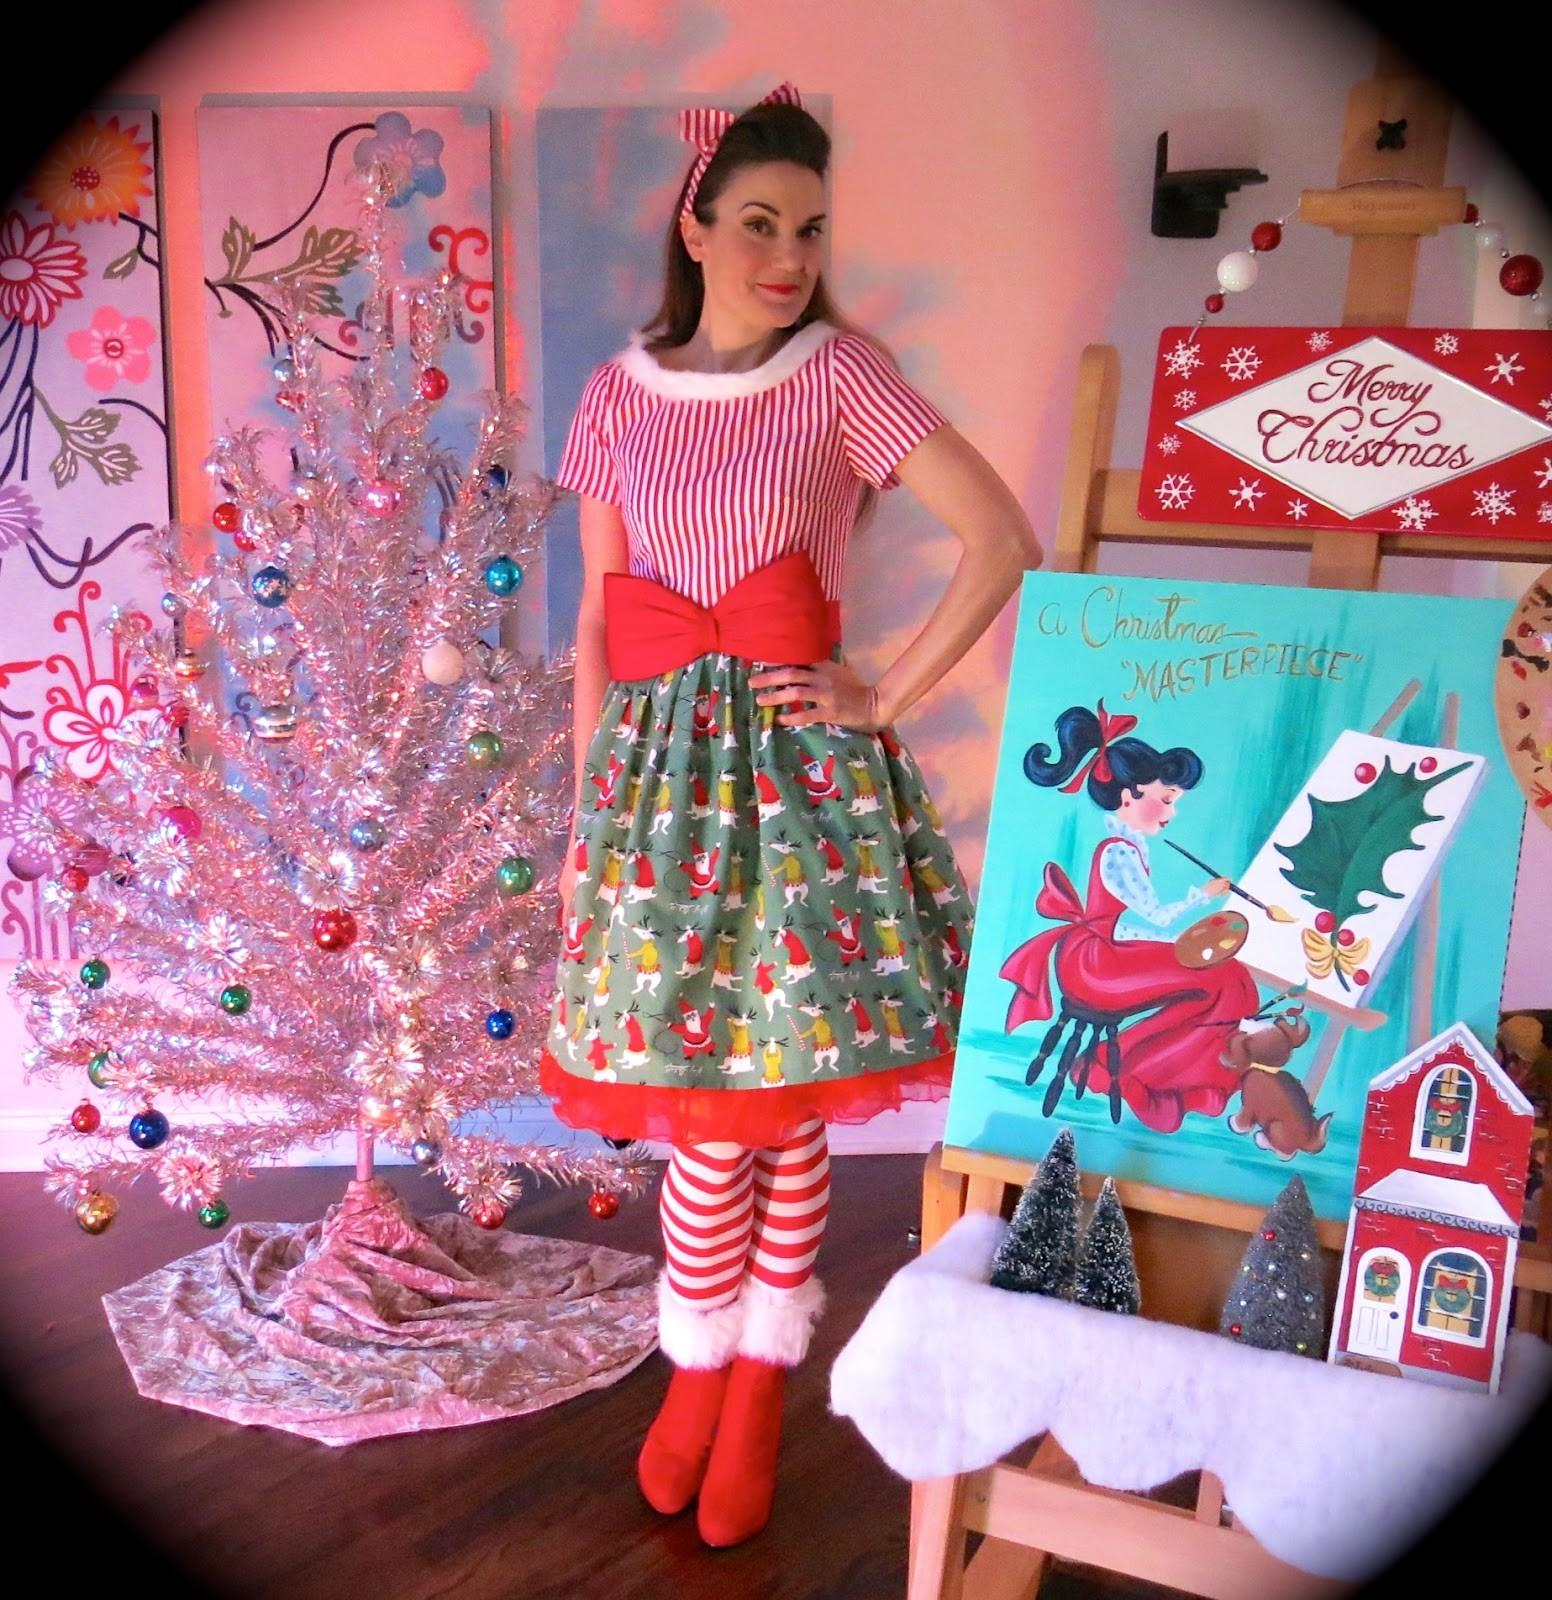 Cassie Stephens Diy Let Our Way Christmas